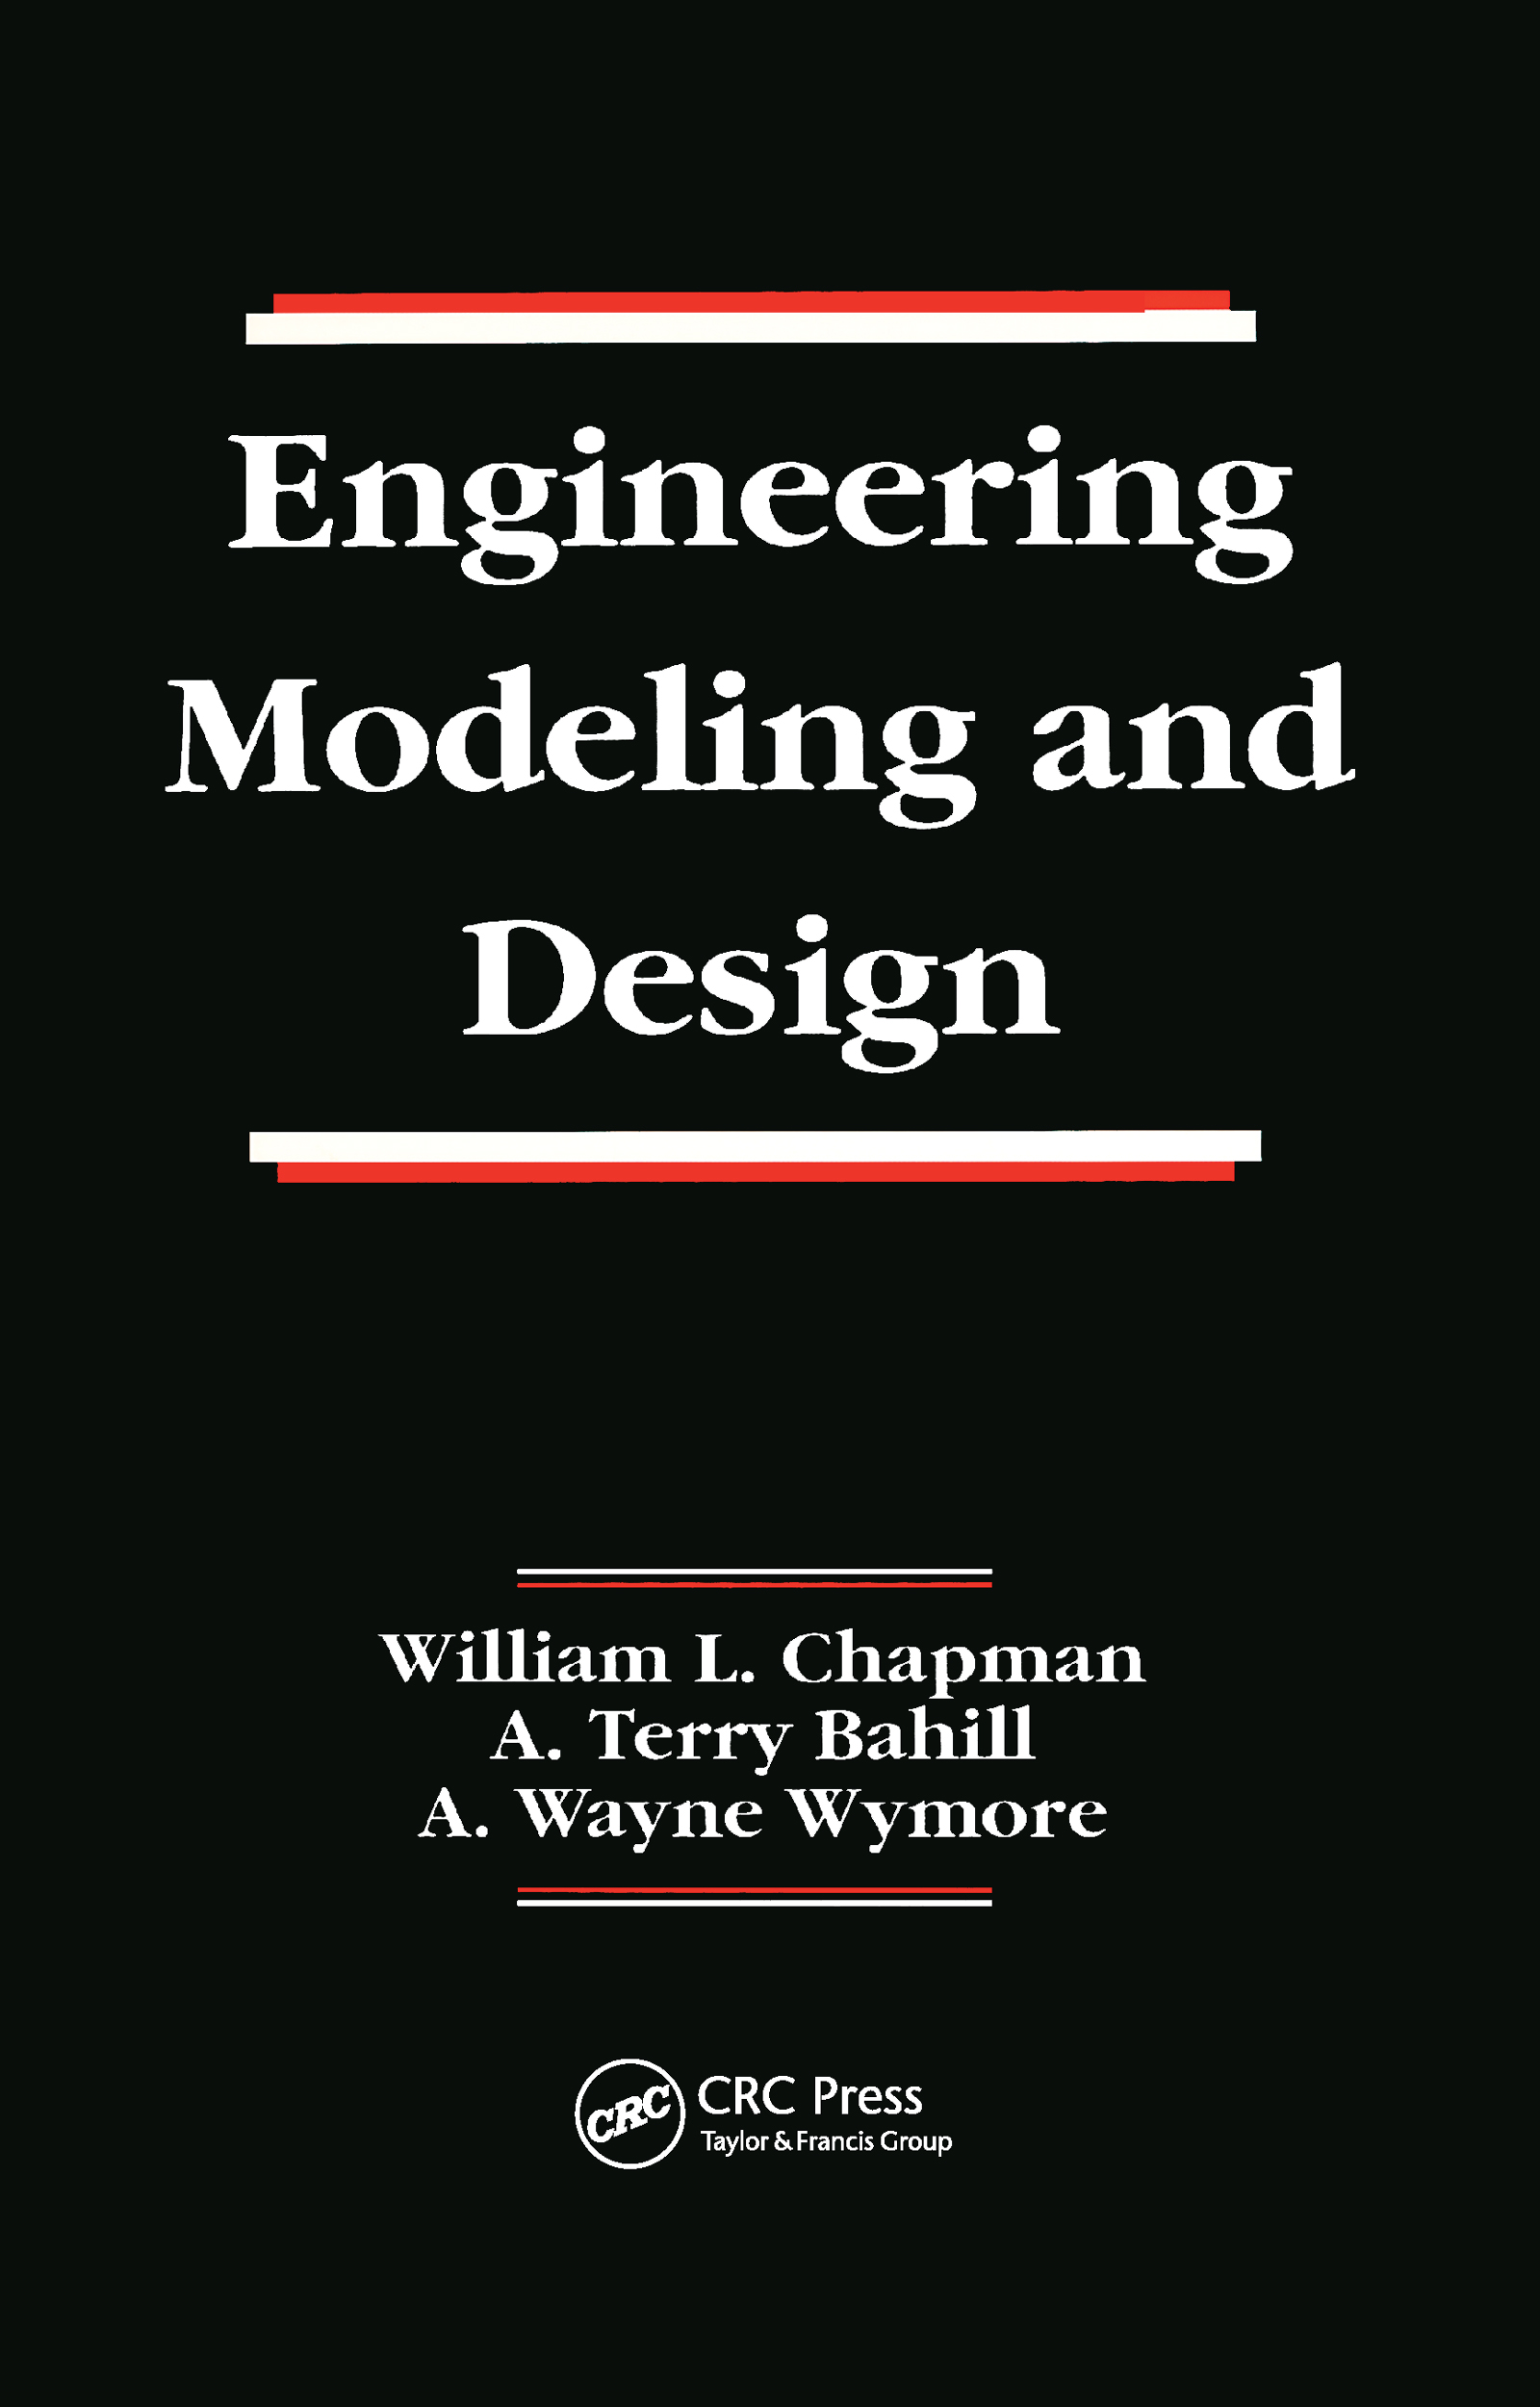 Engineering Modeling and Design